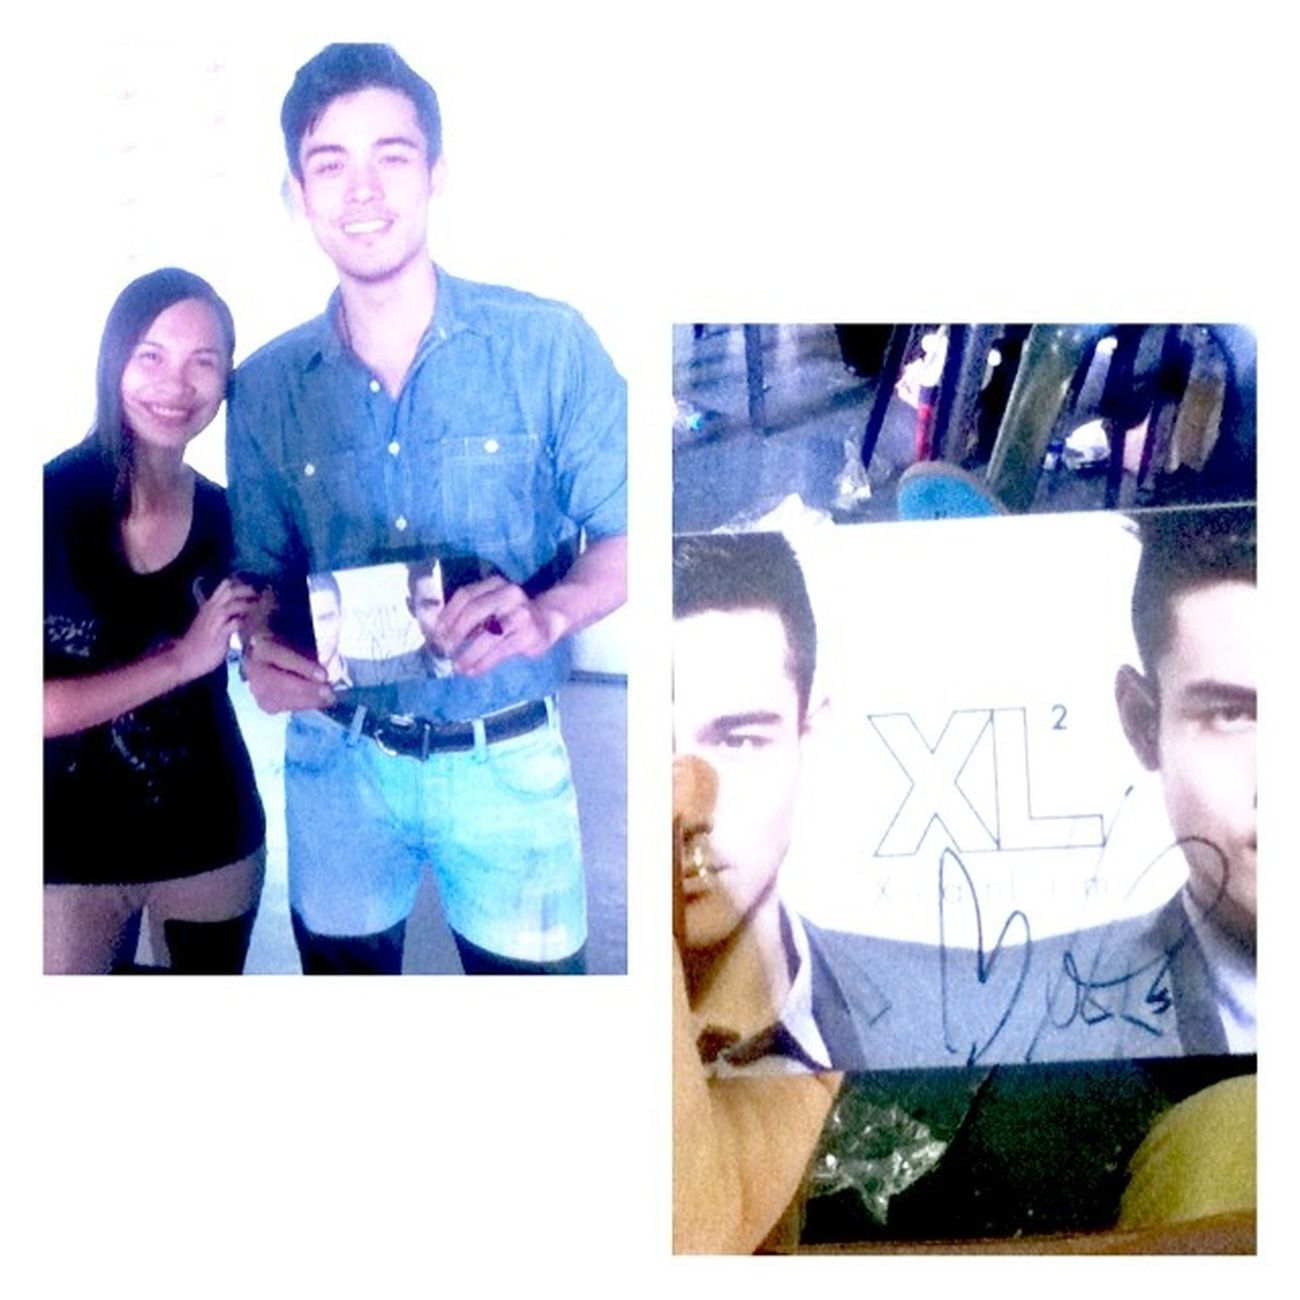 Thankyou@xianlimm!! You made our day. We love you! ❤ XianLimXL2Album